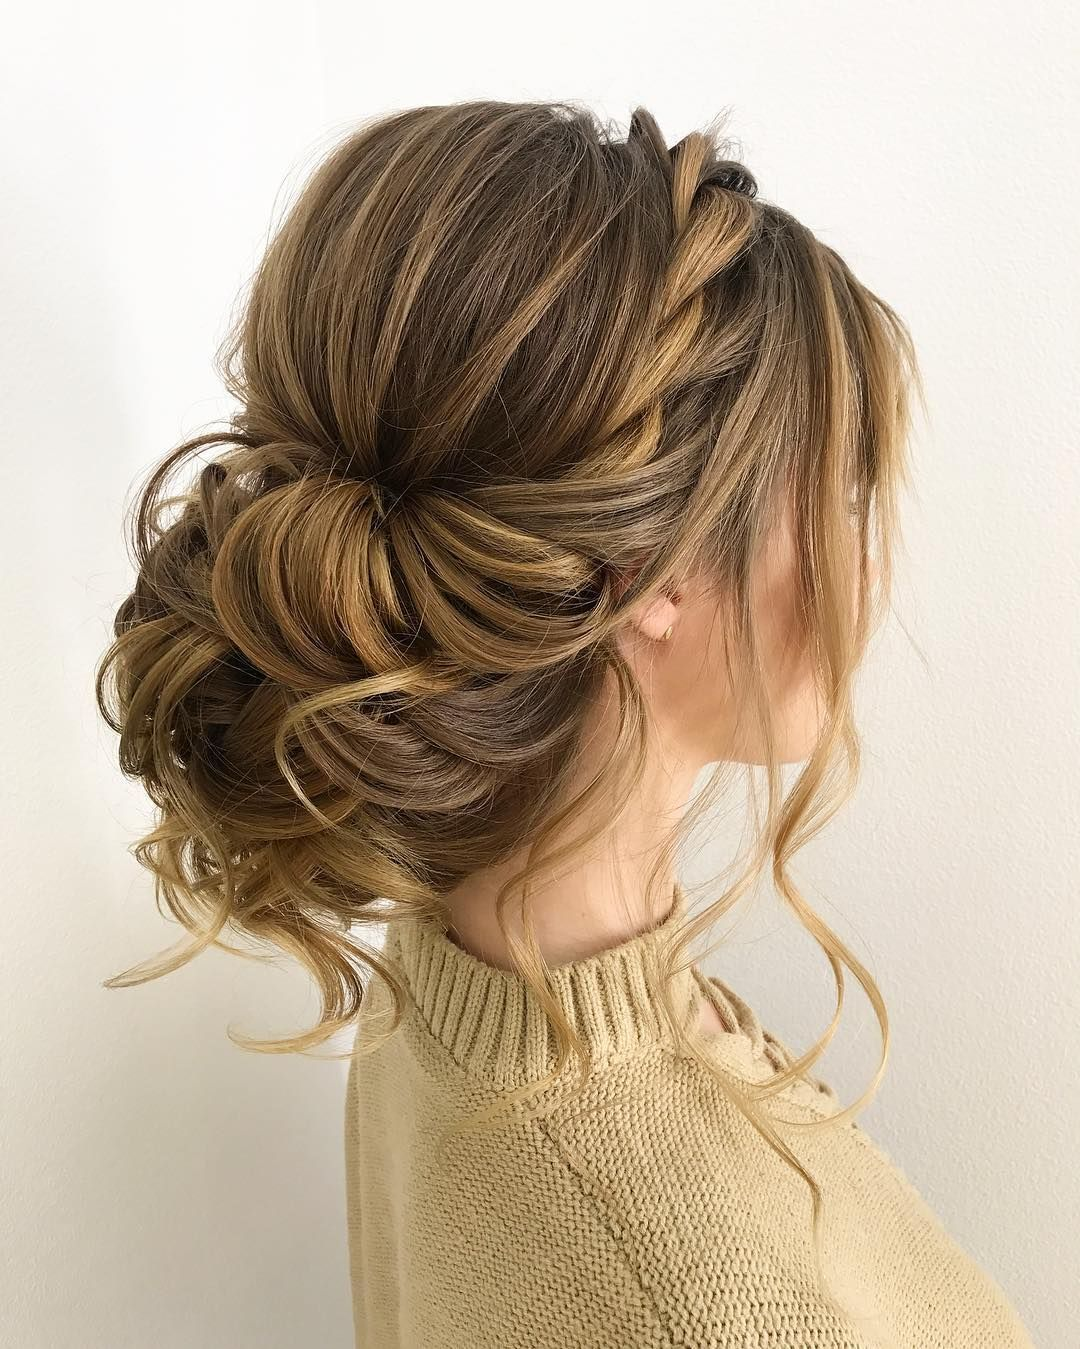 Wedding Braids For Long Hair: Gorgeous Wedding Updo Hairstyles That Will Wow Your Big